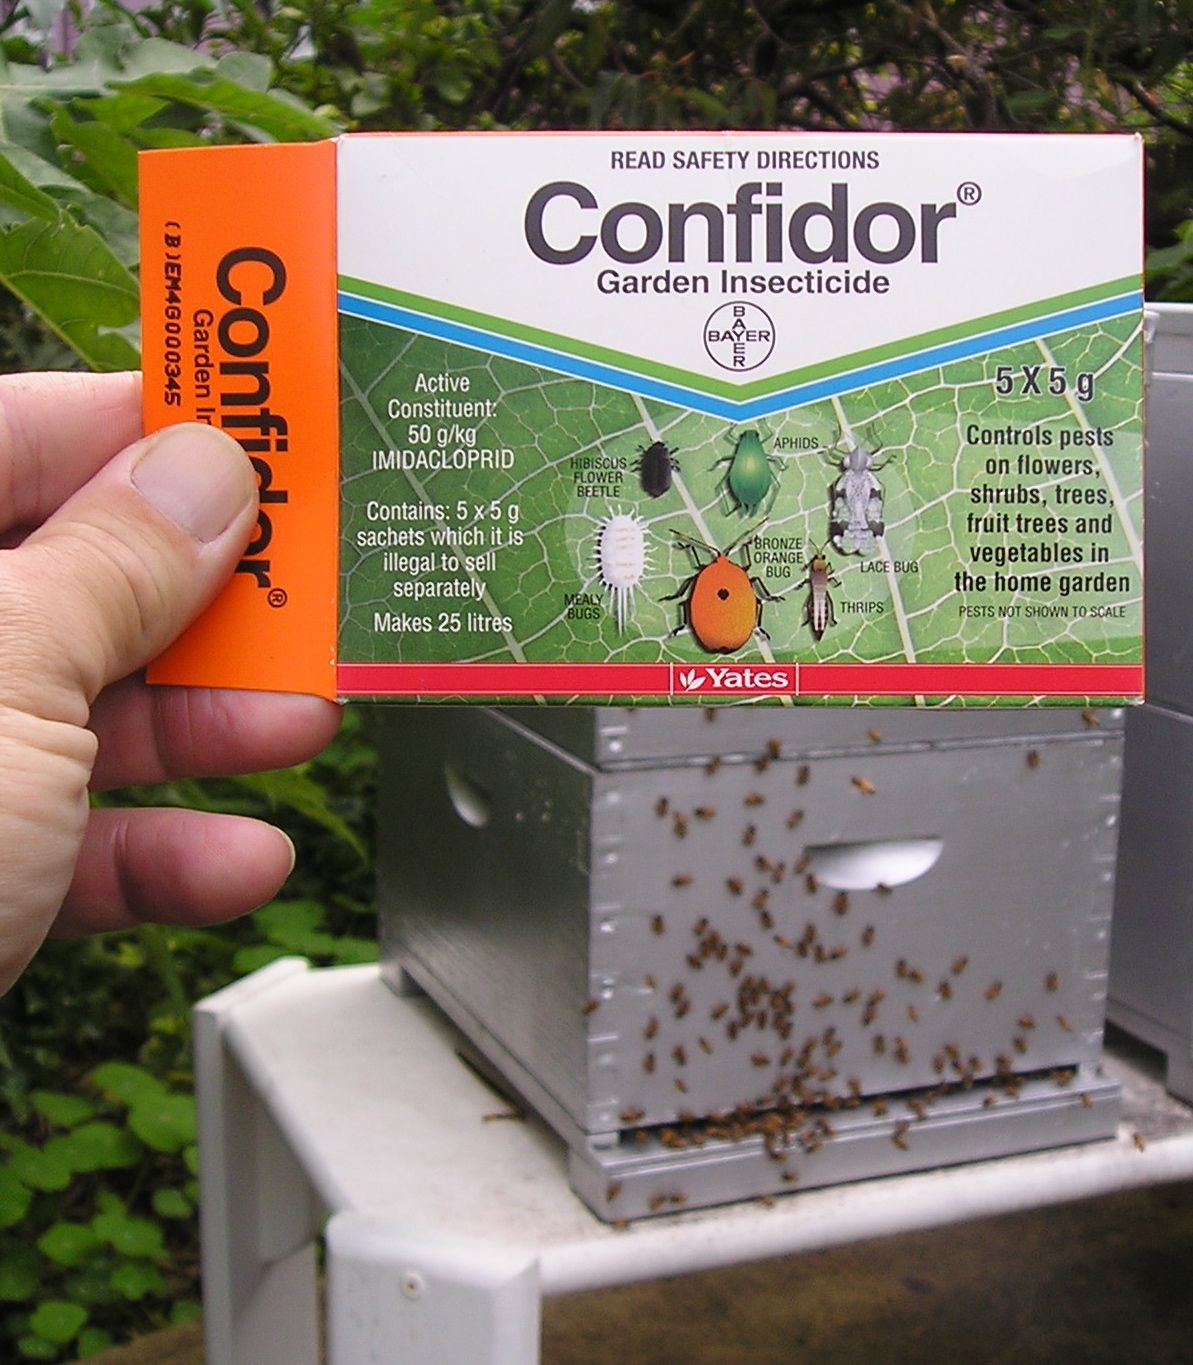 Confidor: instructions for use. Destroy all pests 54